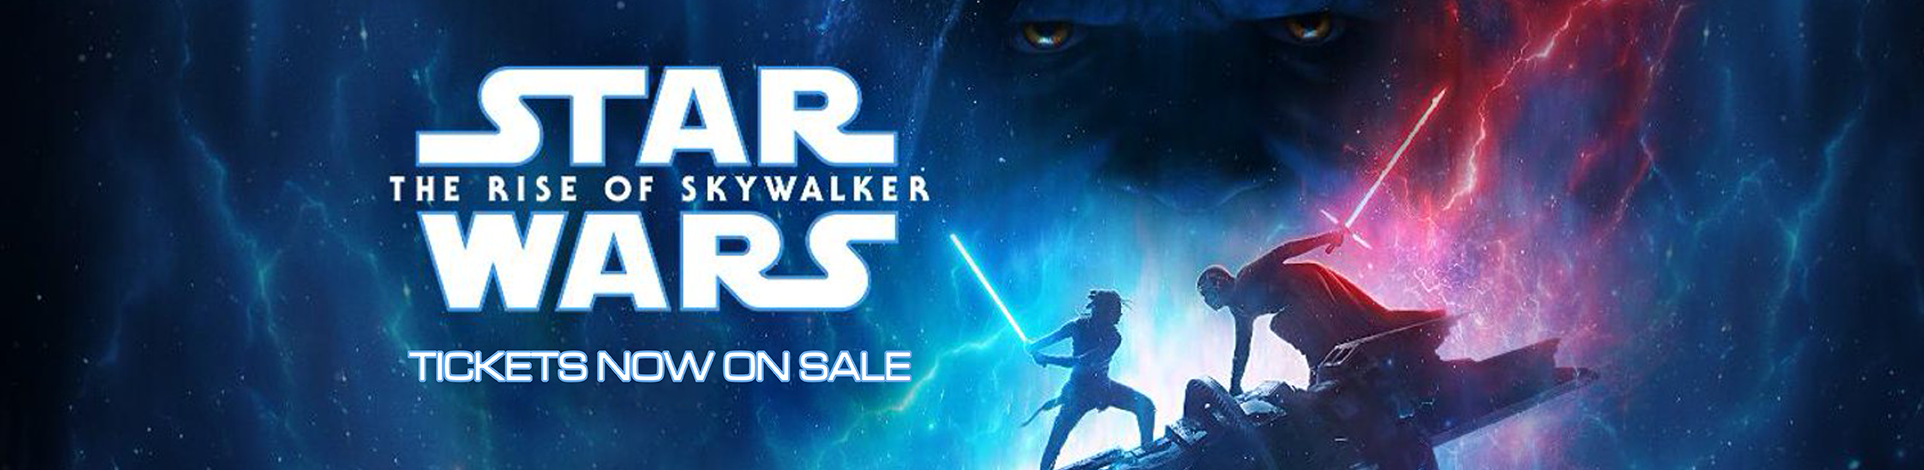 Advanced tickets are now on sale for Star Wars: The Rise of Skywalker